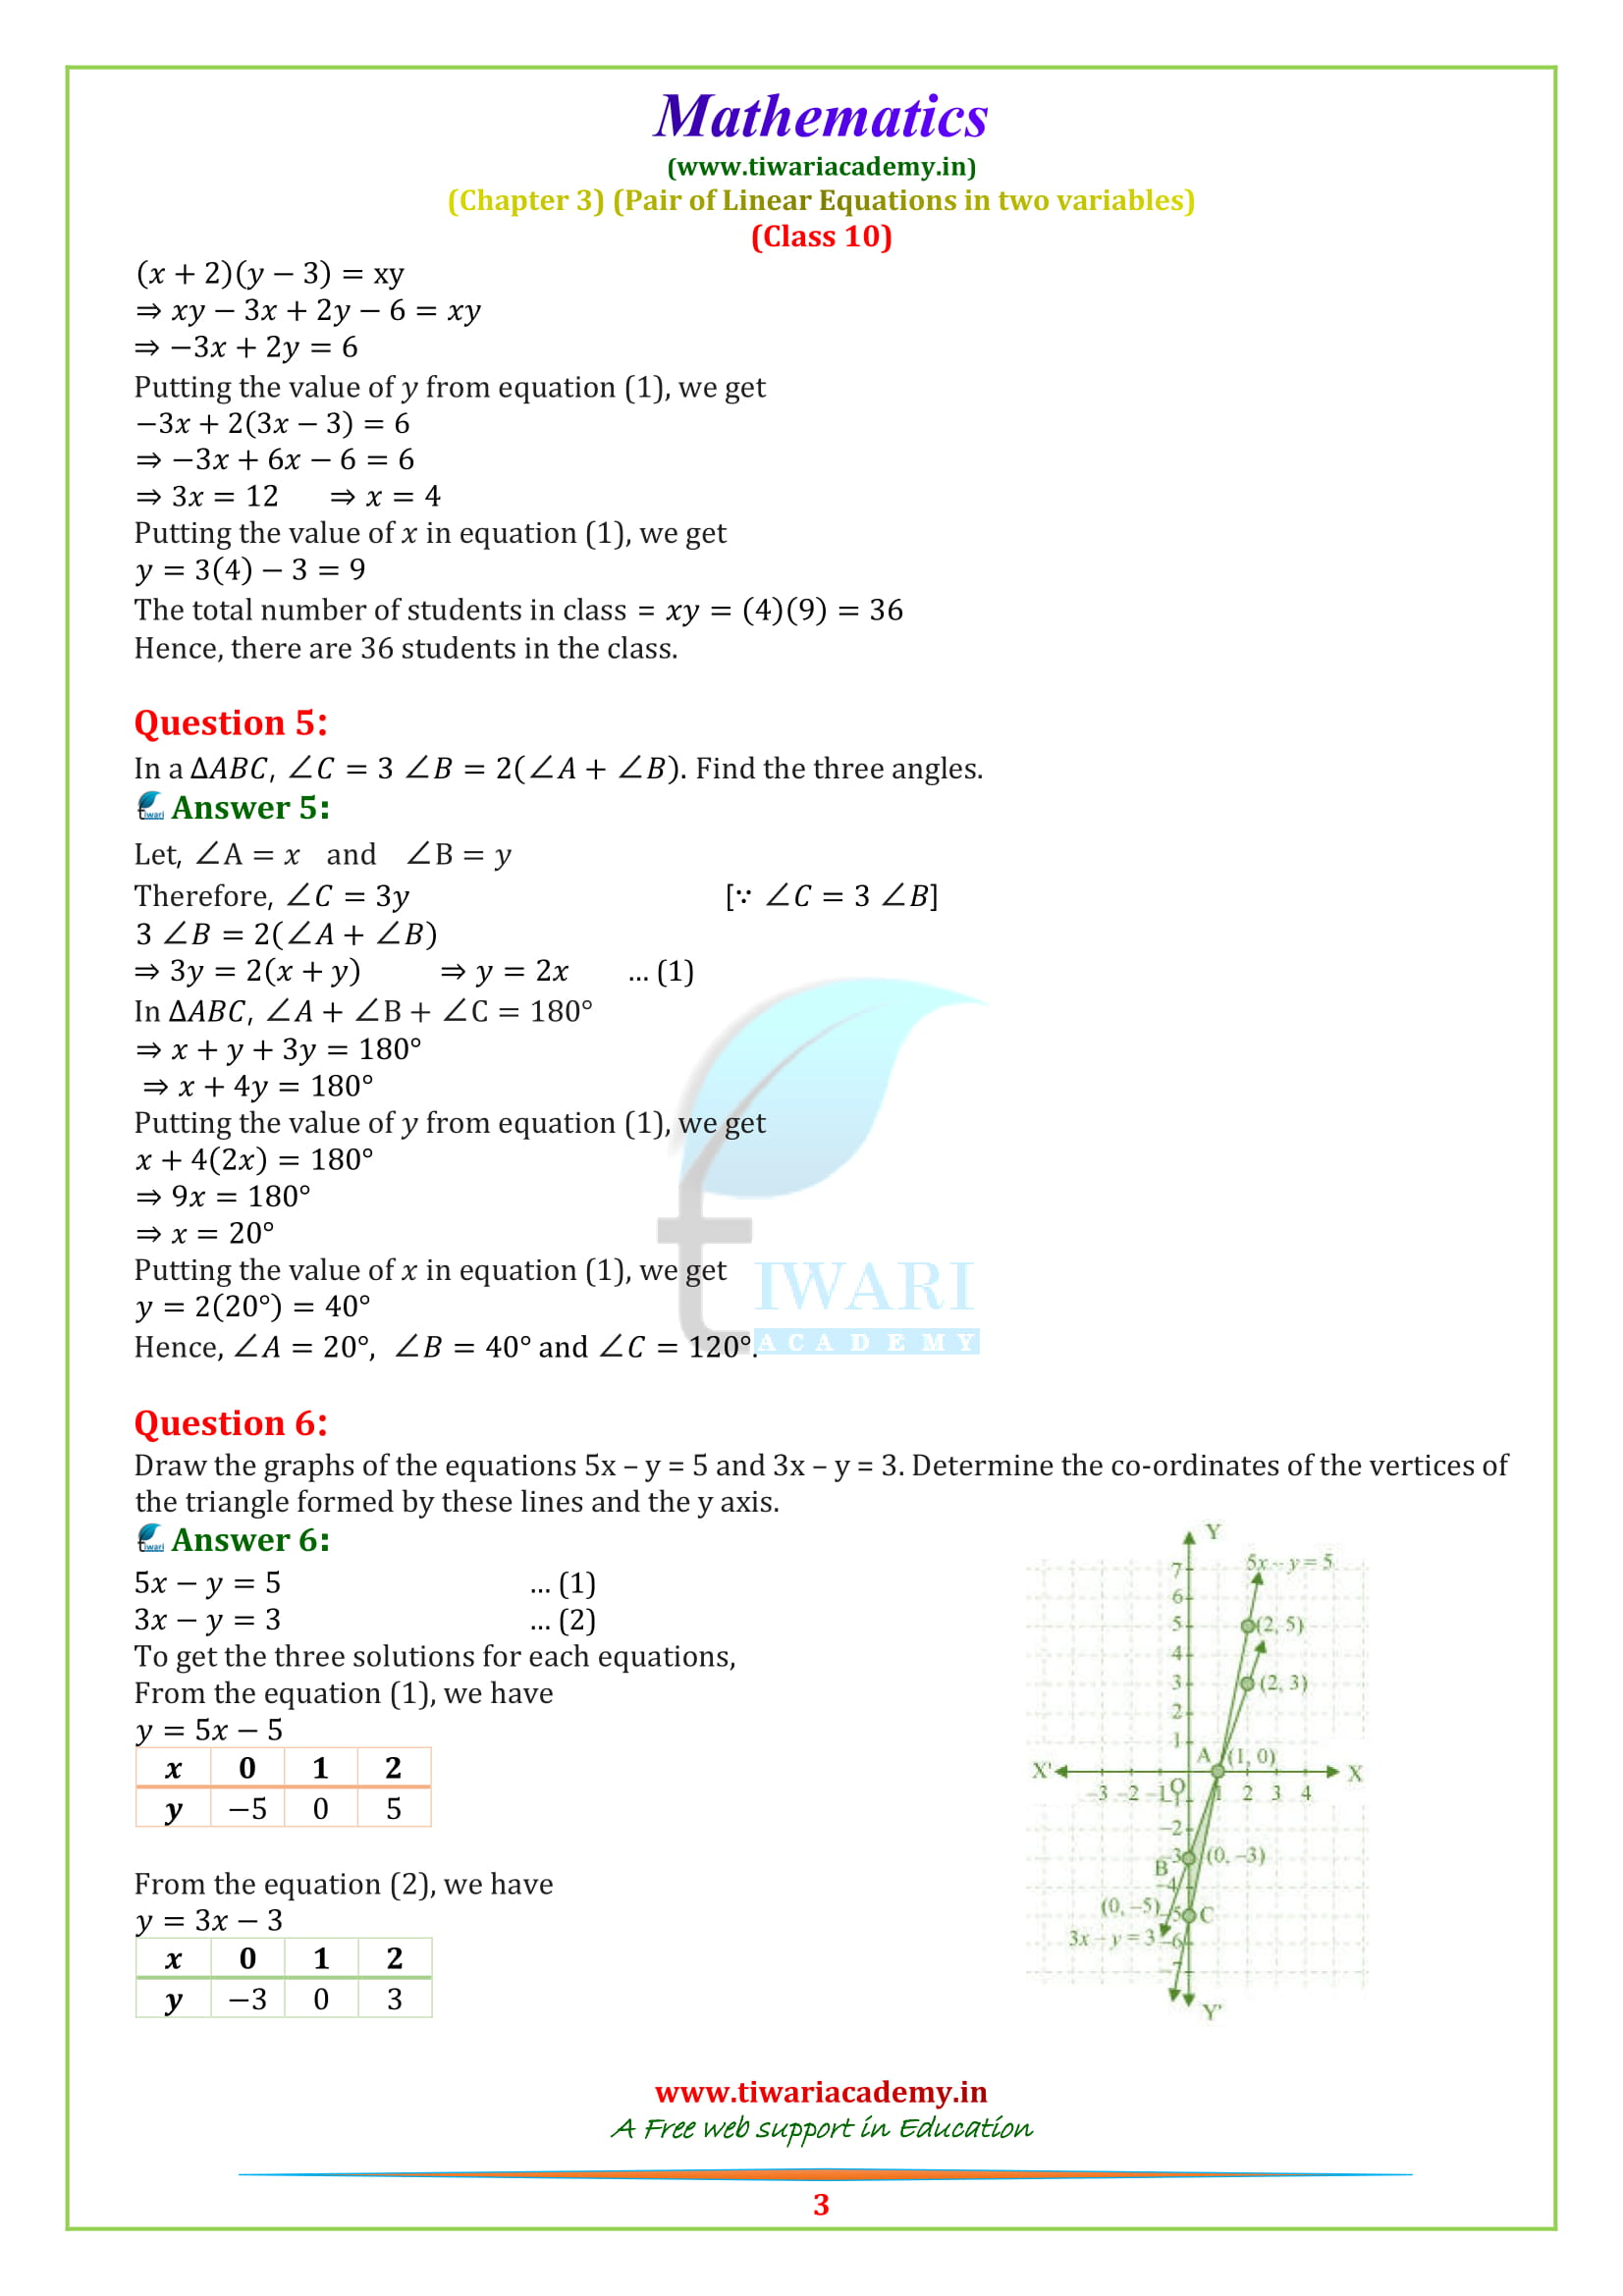 10 Maths optional exercise 3.7 solutions updated for 2018-19